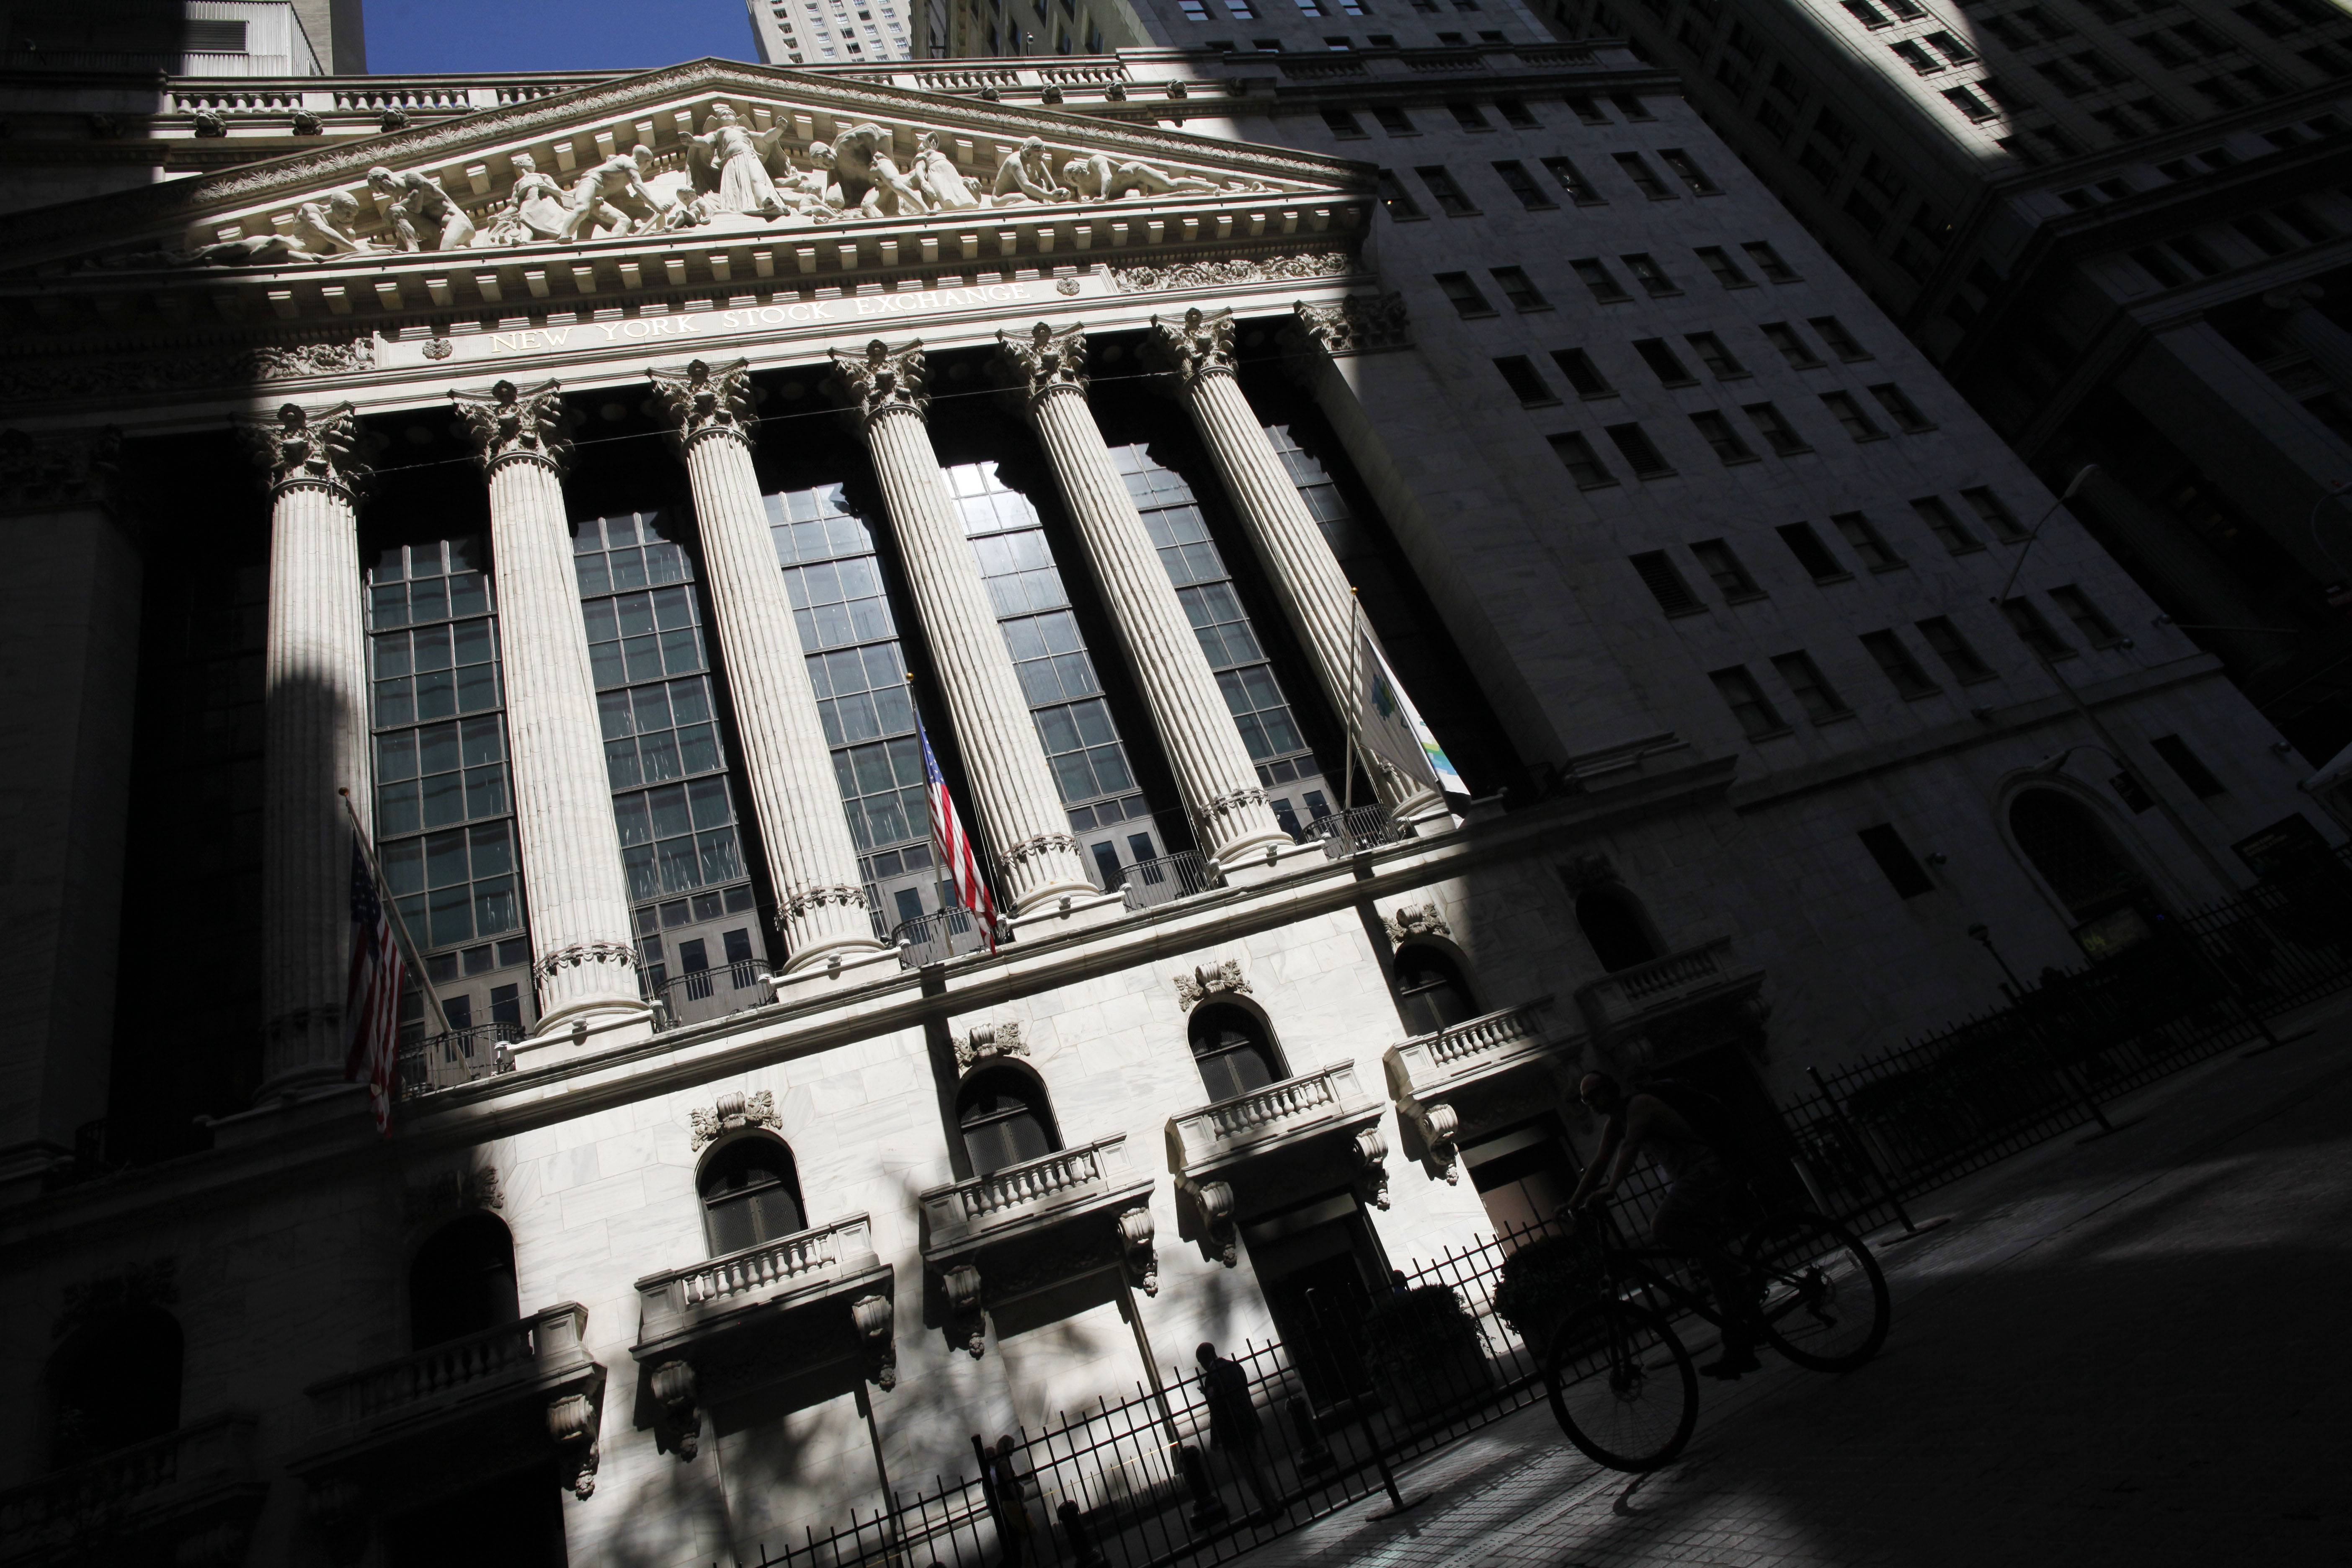 Stocks rose modestly Thursday, sending the Standard & Poor's 500 index to another record high. Investors rallied behind a bidding war in the food industry as well as a somewhat positive report on the U.S. labor market.